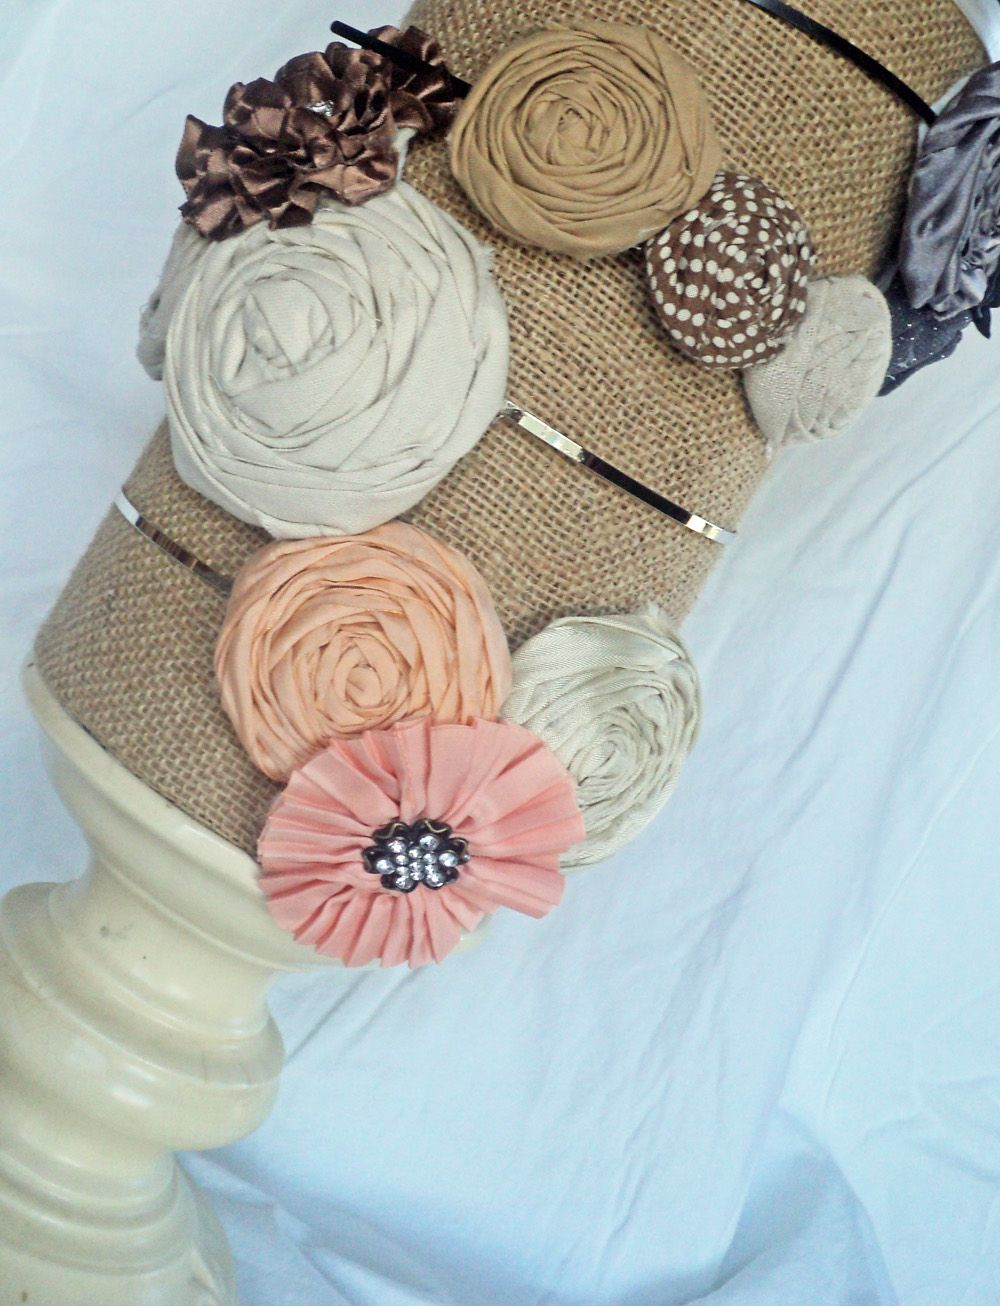 another oatmeal can headband holder. So cute!